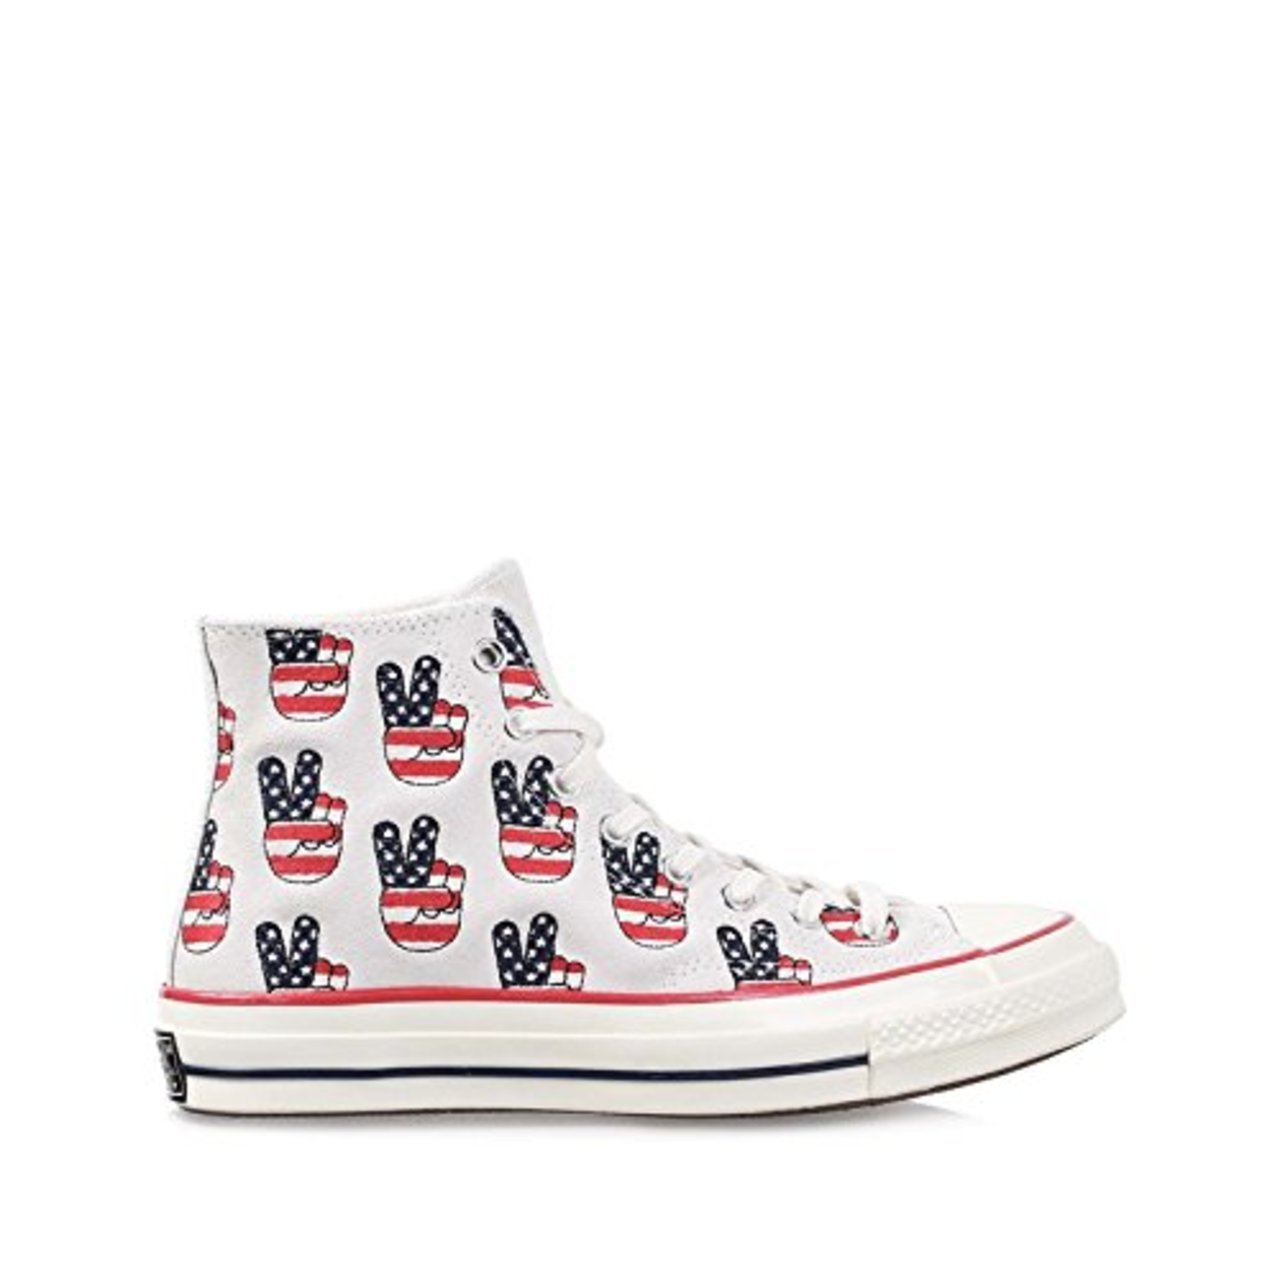 Converse Chuck Taylor All Star 70 Election Day High Top Bone 7 D(M) US